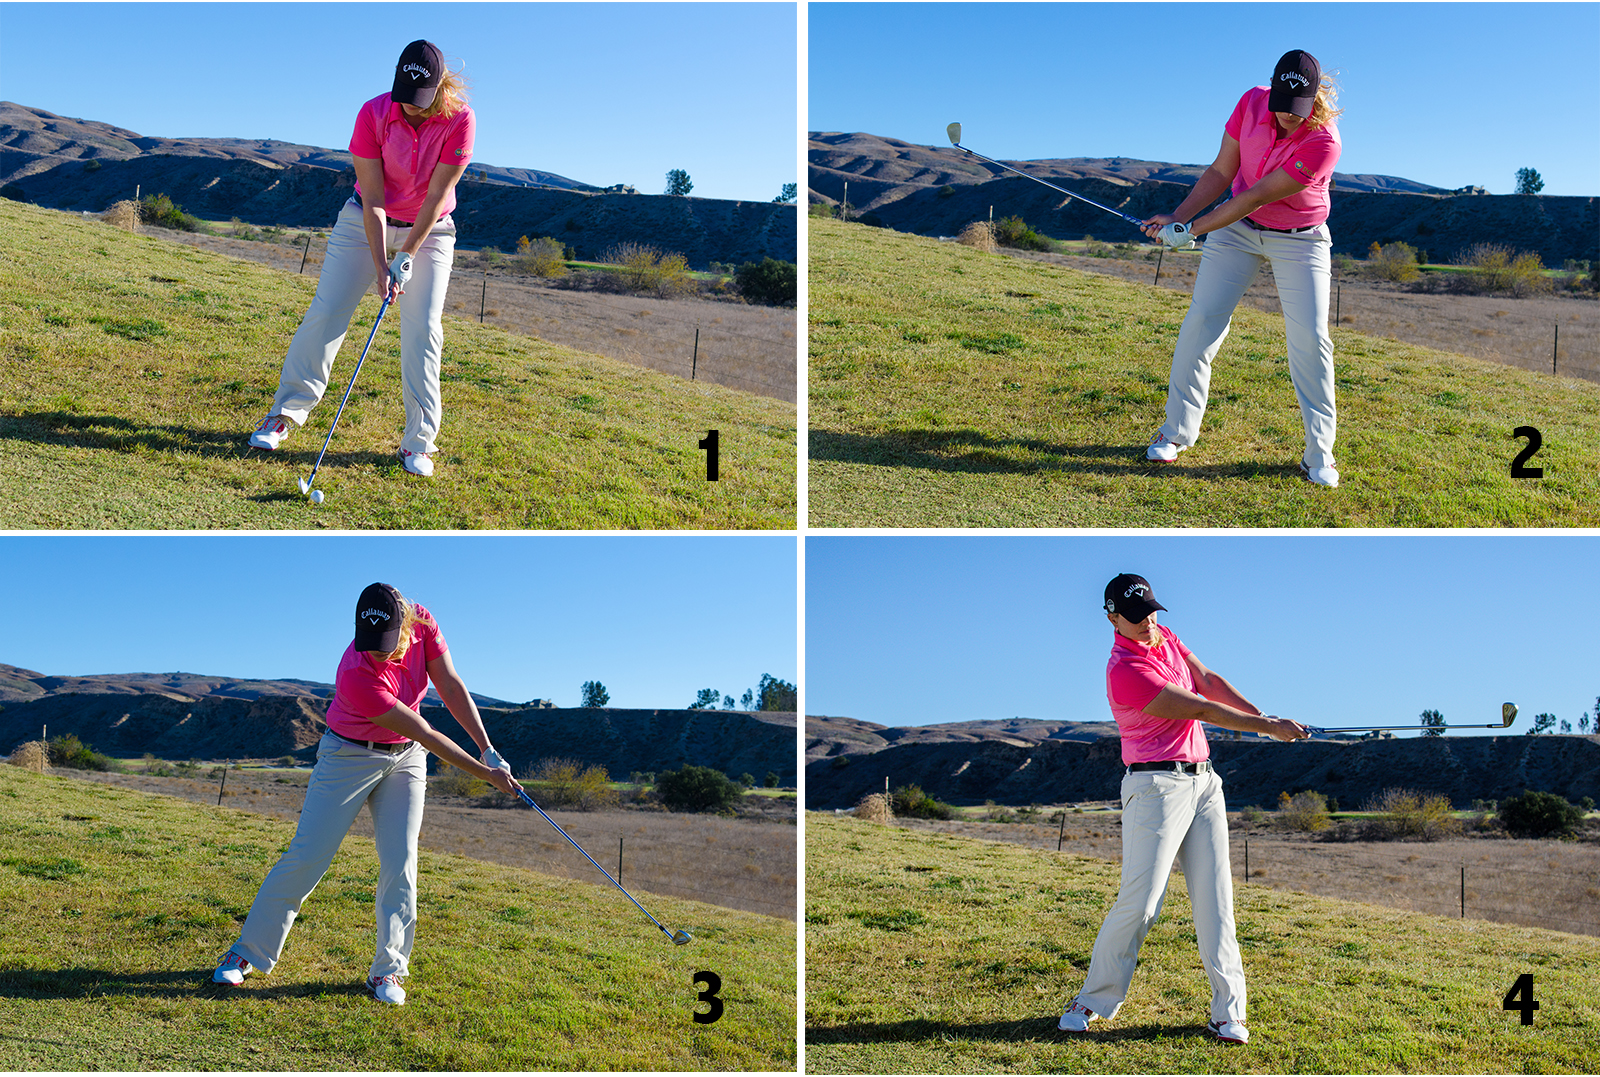 Golf Swing Downhill